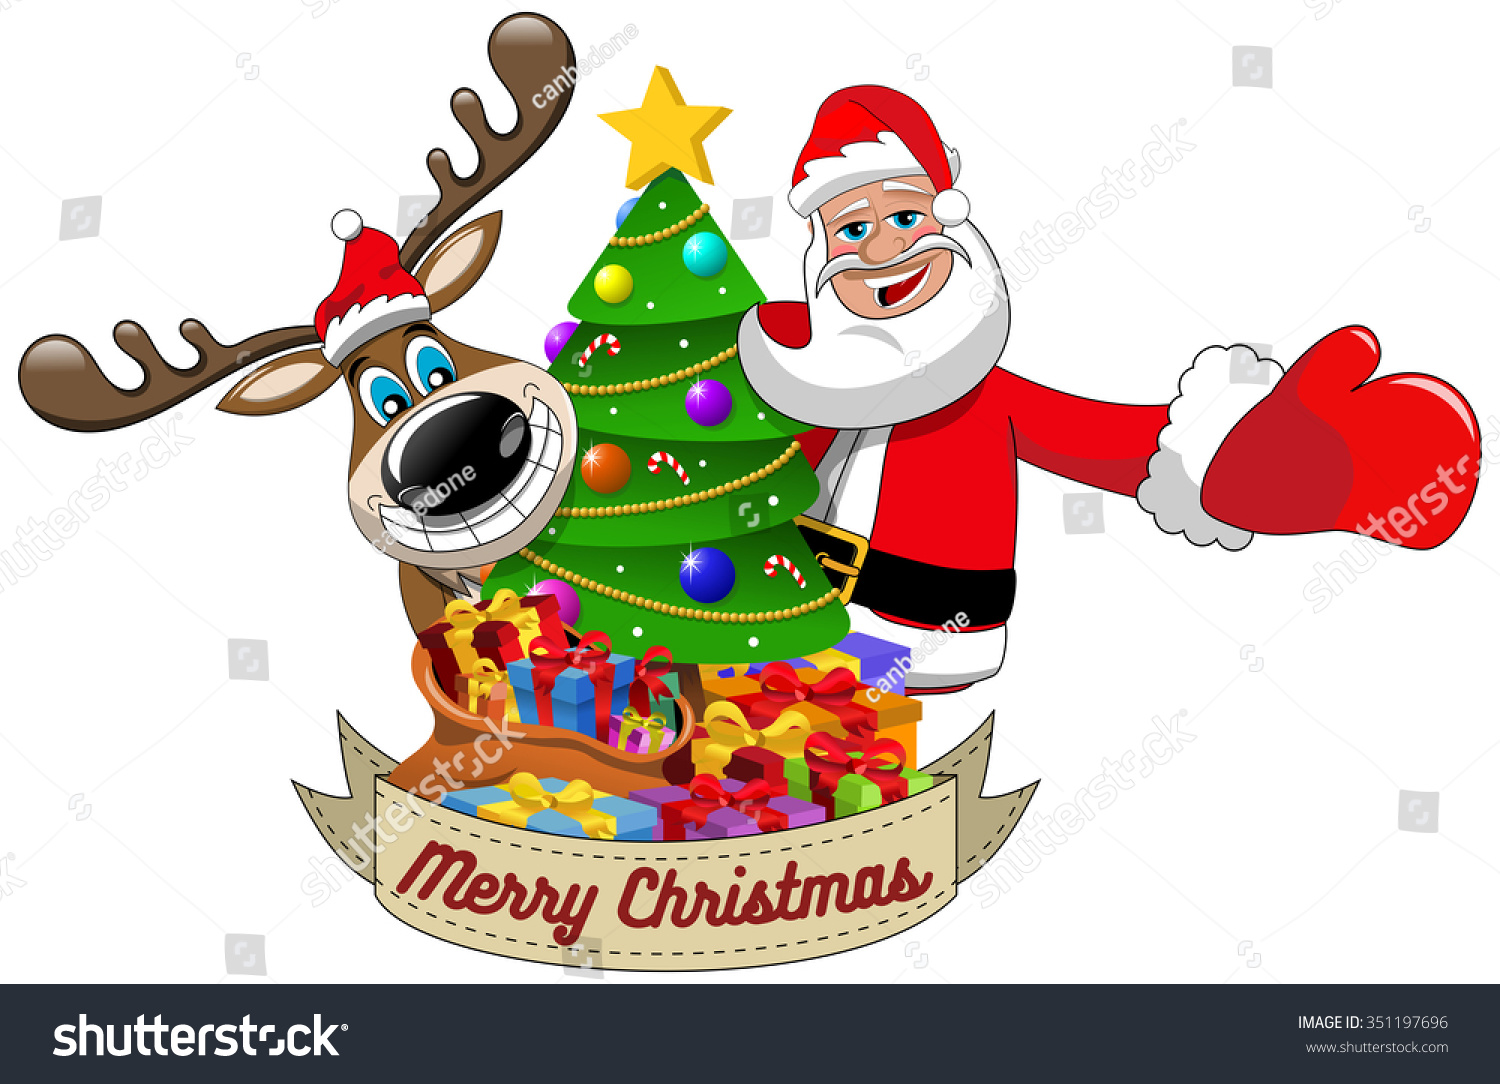 Cartoon Funny Reindeer Santa Claus Wishing Stock Vector ...